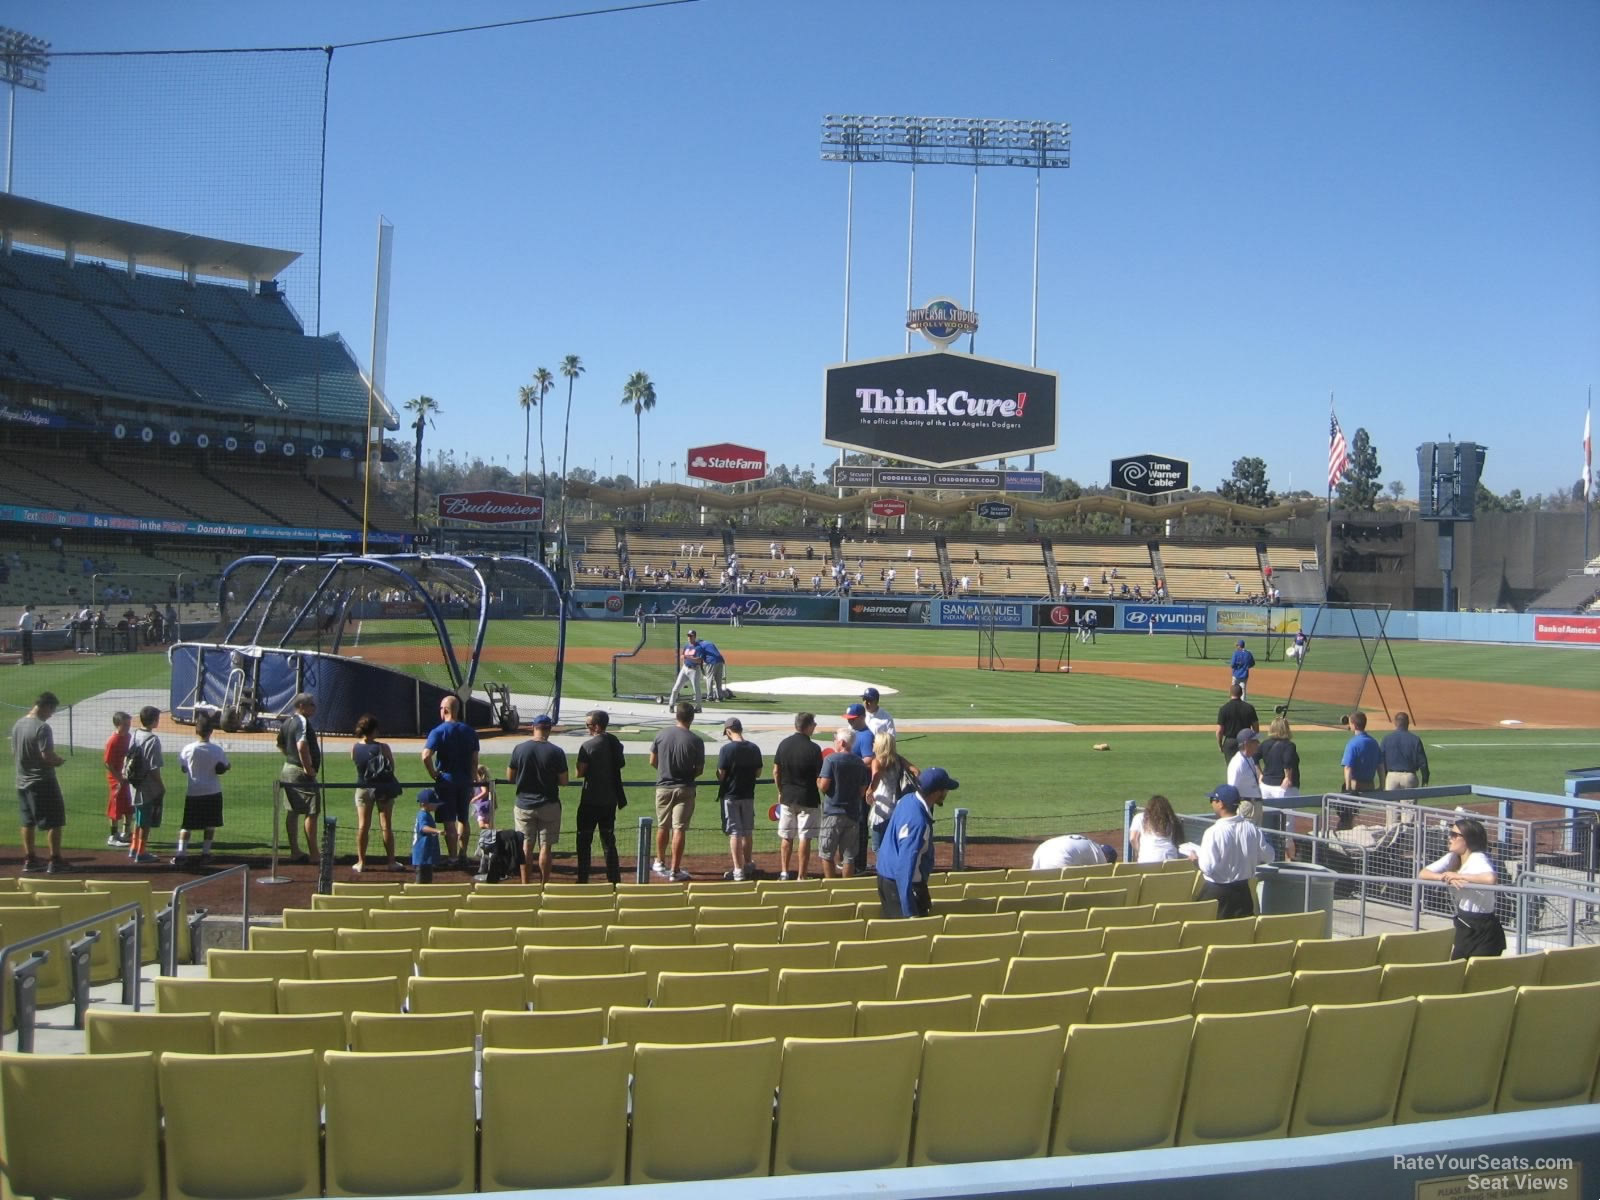 Dodger Stadium Section 10 - RateYourSeats.com